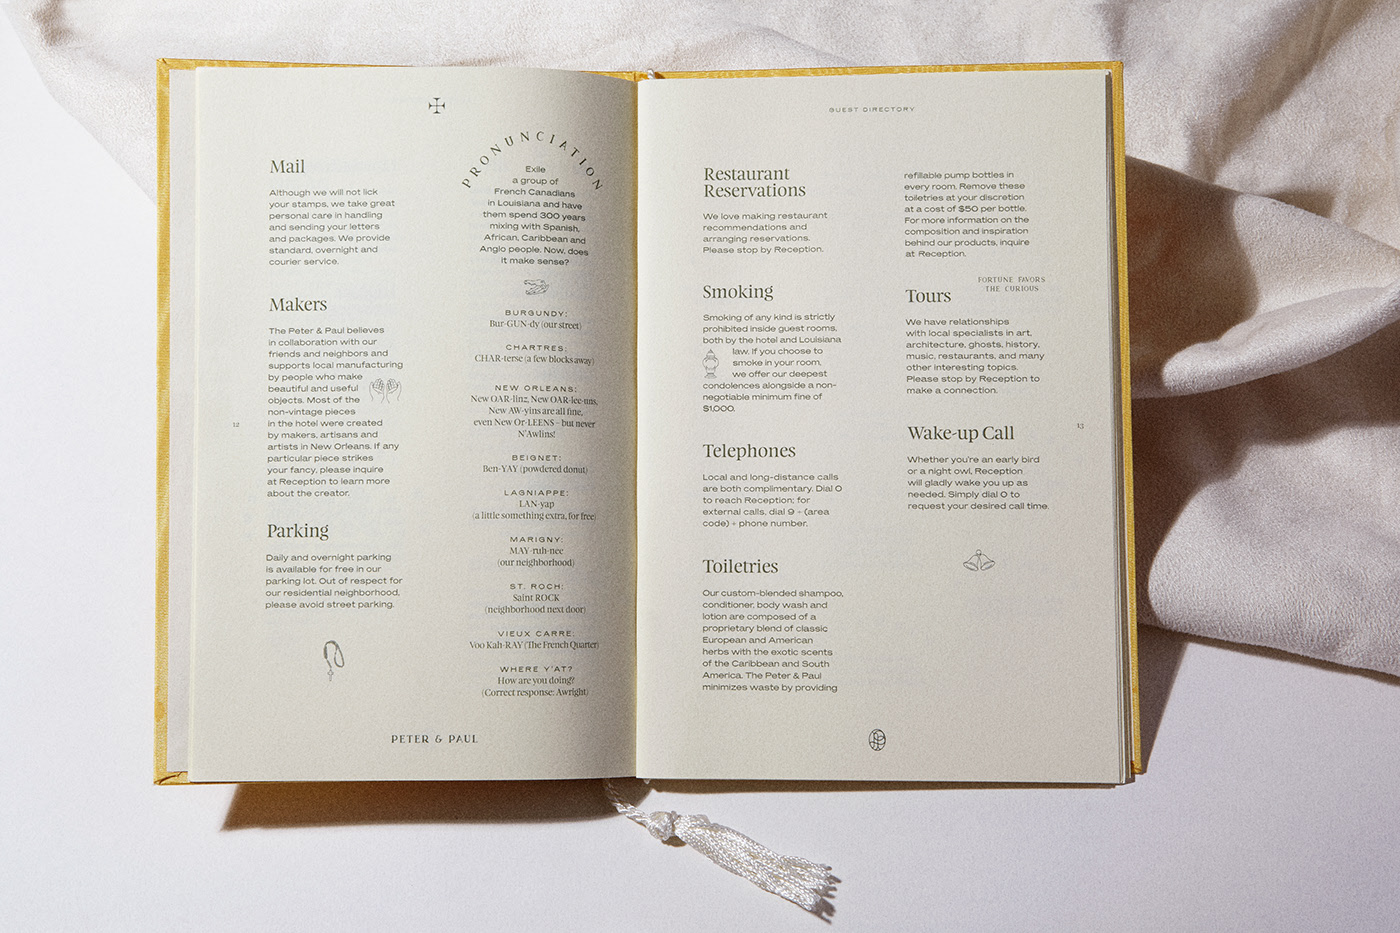 Hotel Peter Paul On Behance Restaurant Branding Identity Book